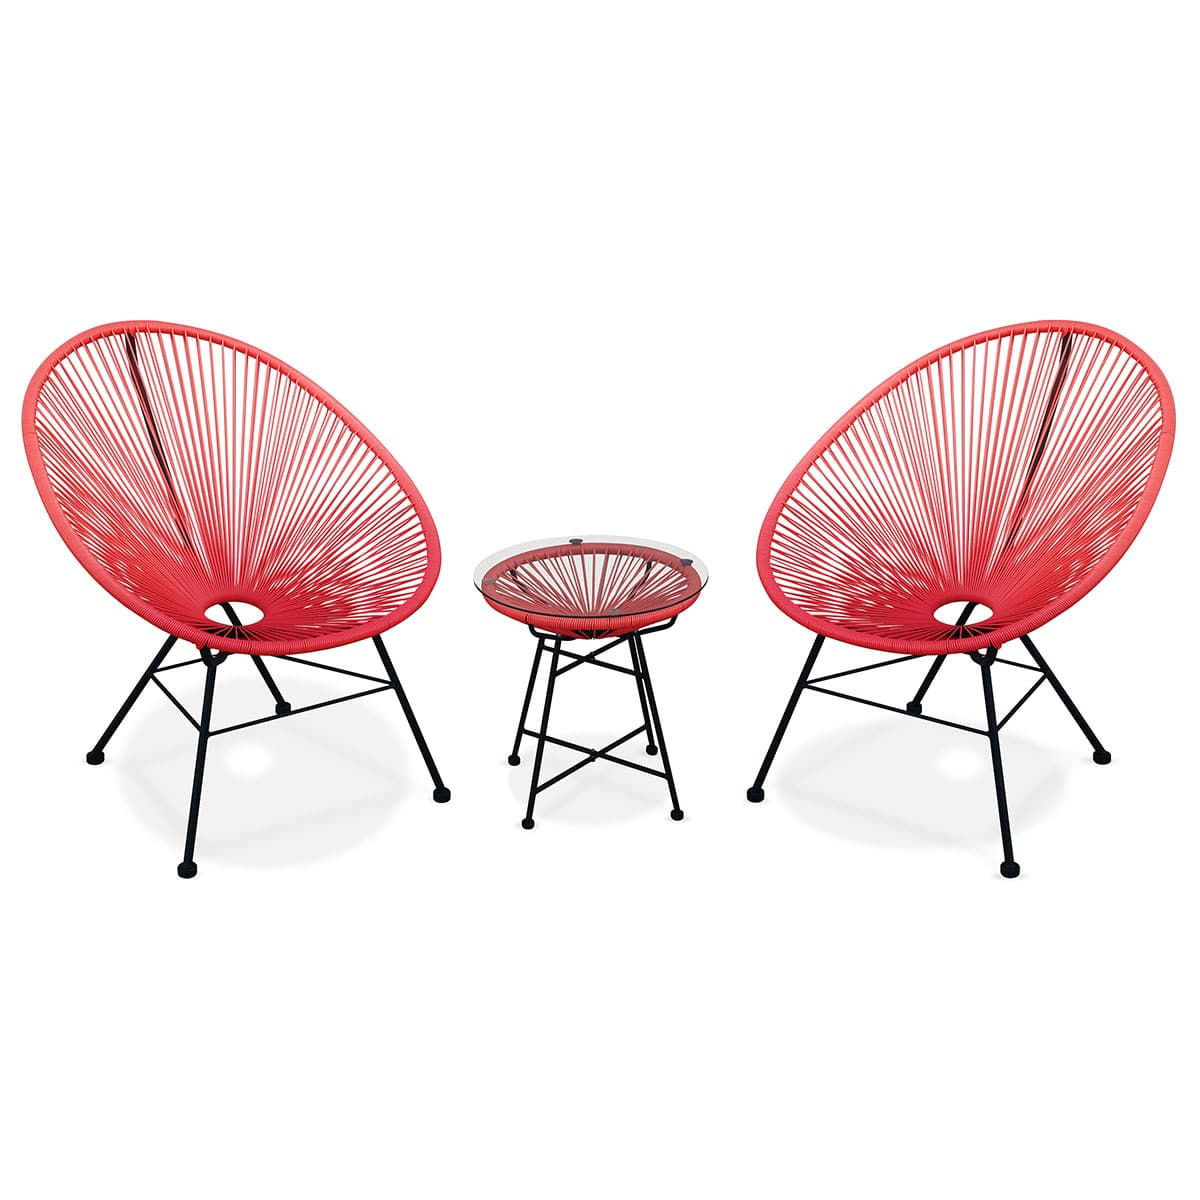 ACAPULCO set of 2 egg chairs + coffee table red